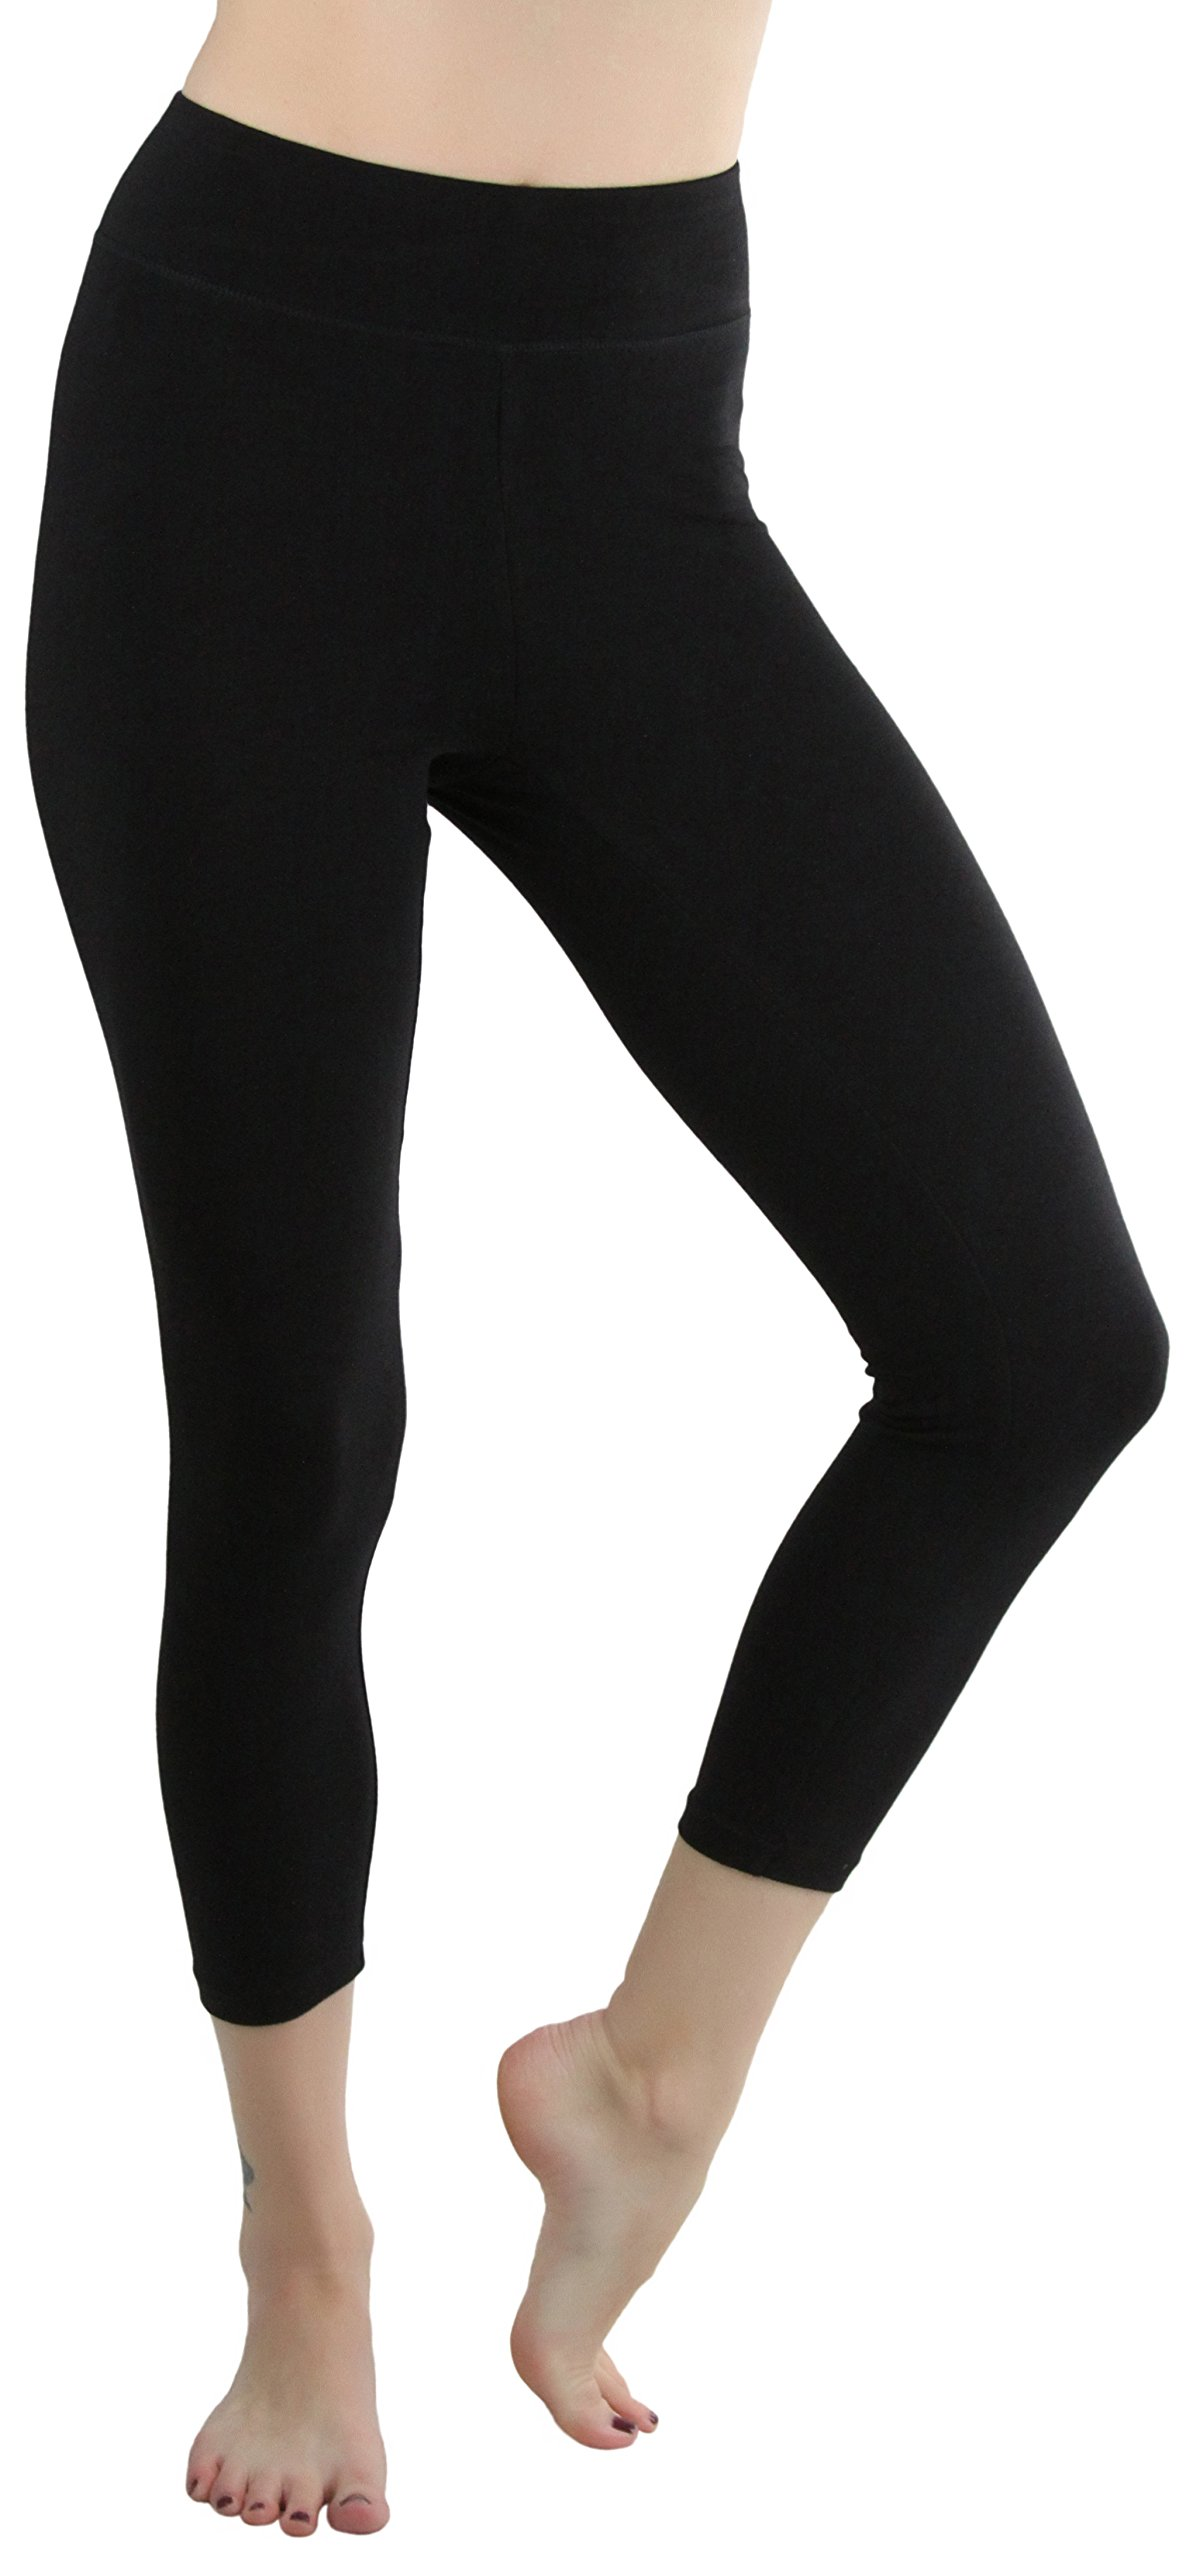 ToBeInStyle Women's Cotton-Spandex Capri Leggings - Black - Medium